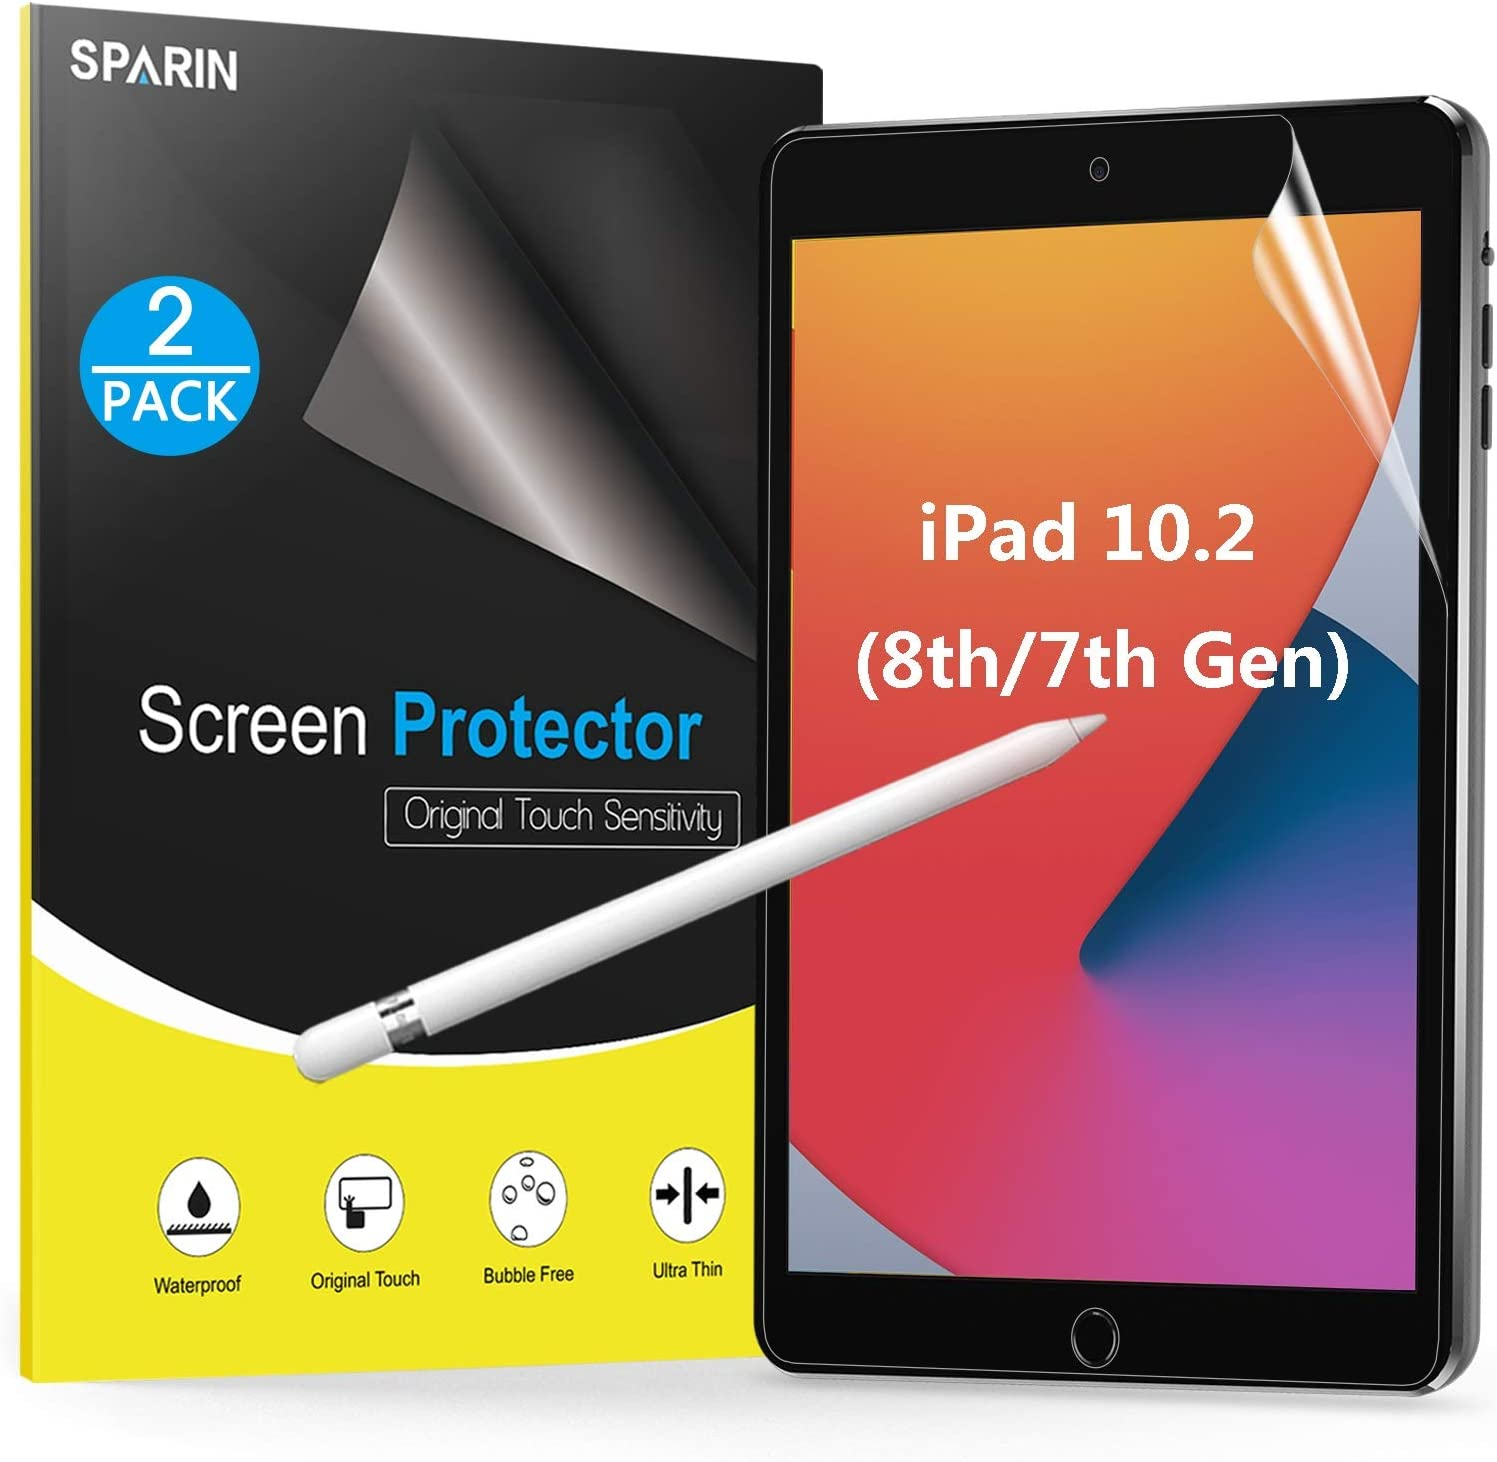 [2-Pack] Paperfeel Screen Protector for iPad 8th Generation 2020 / iPad 7th Generation 2019 Released (10.2 Inch), SPARIN Matte Screen Protector Like Paper Texture Compatible with Apple Pencil, No Glare